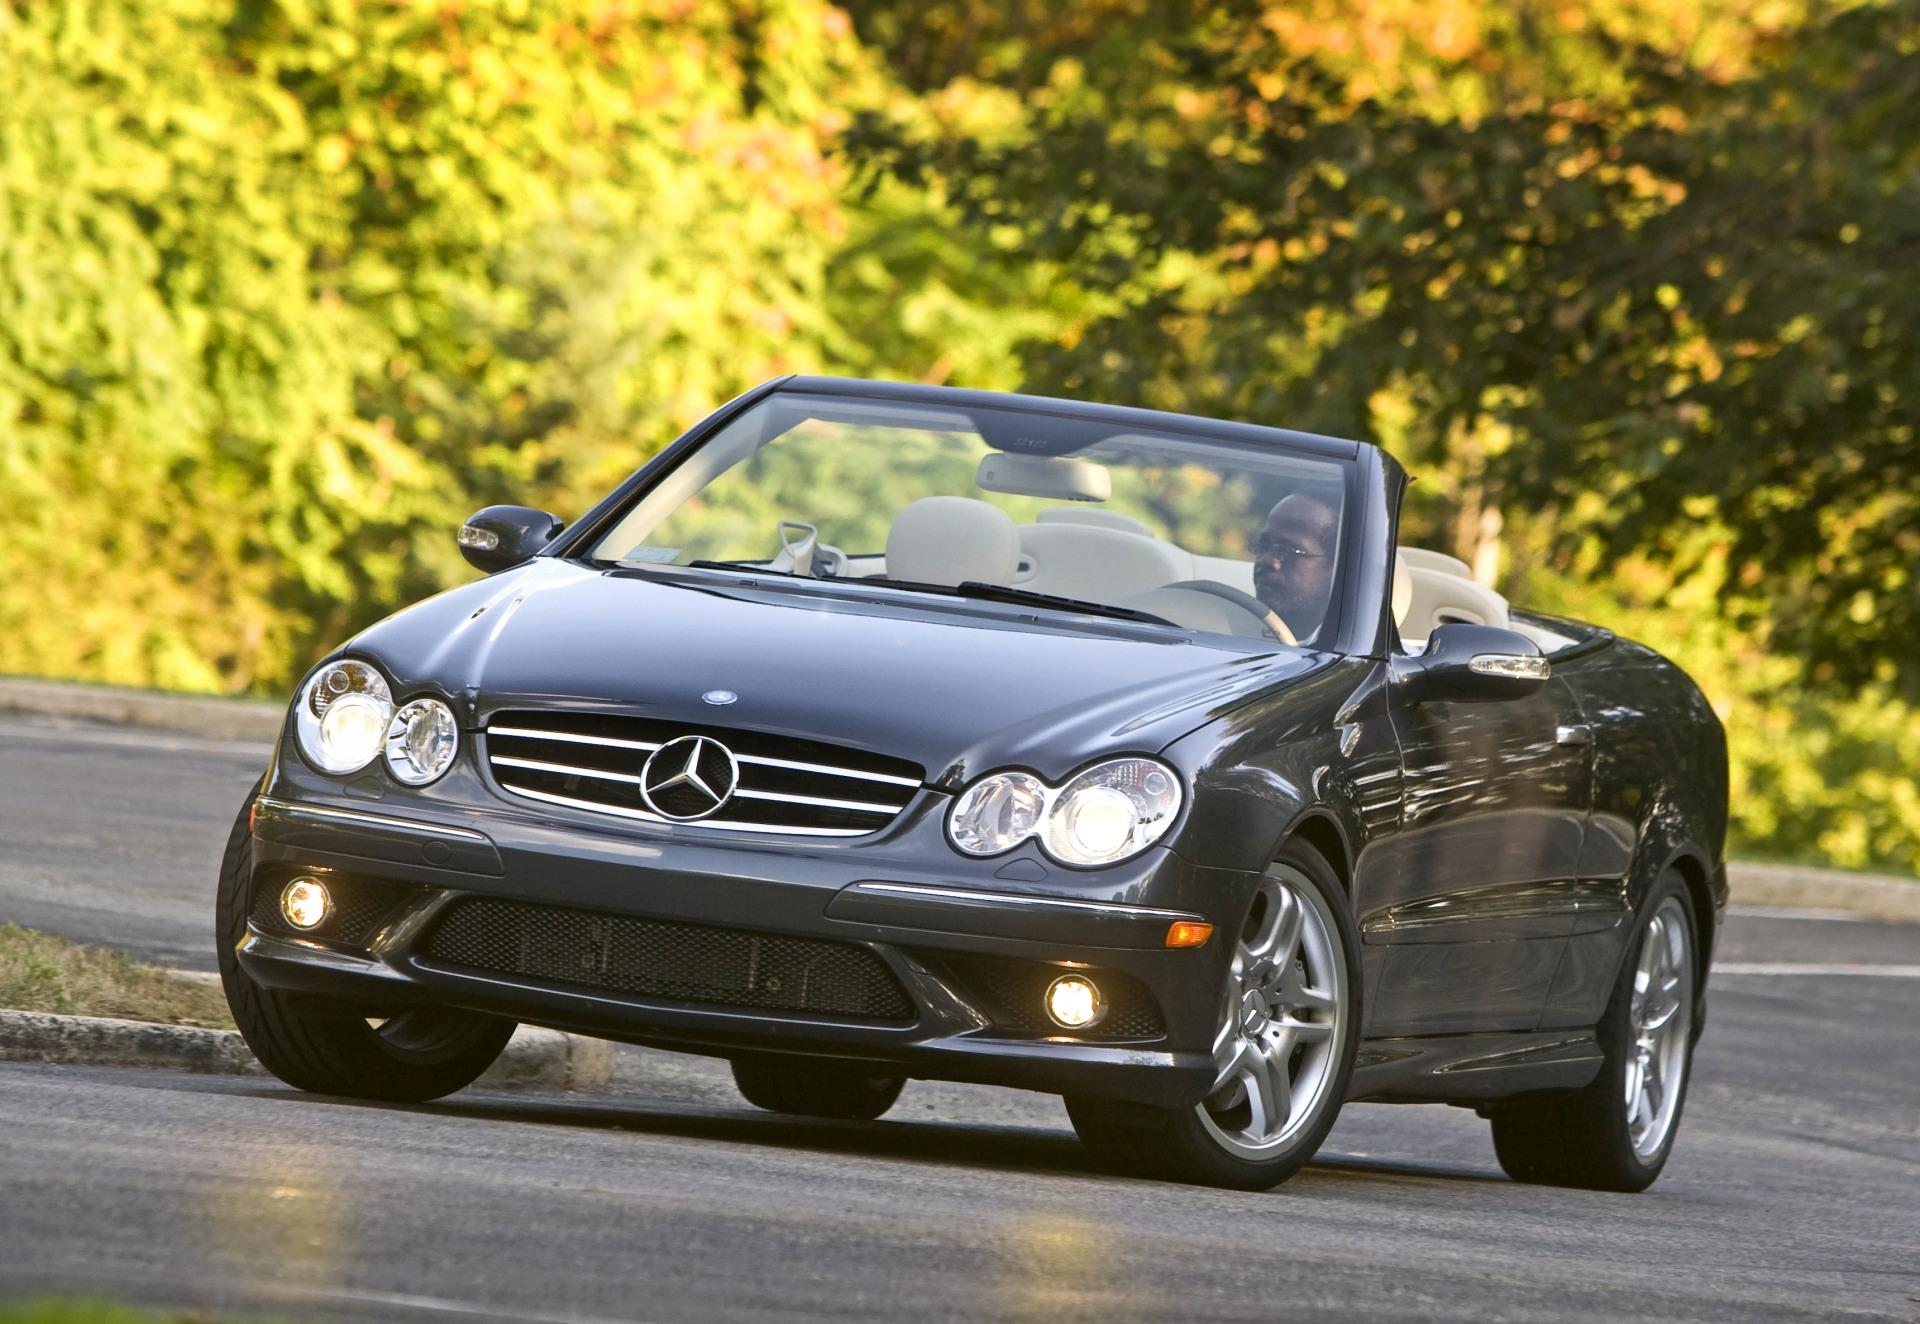 2009 mercedes benz clk class. Black Bedroom Furniture Sets. Home Design Ideas